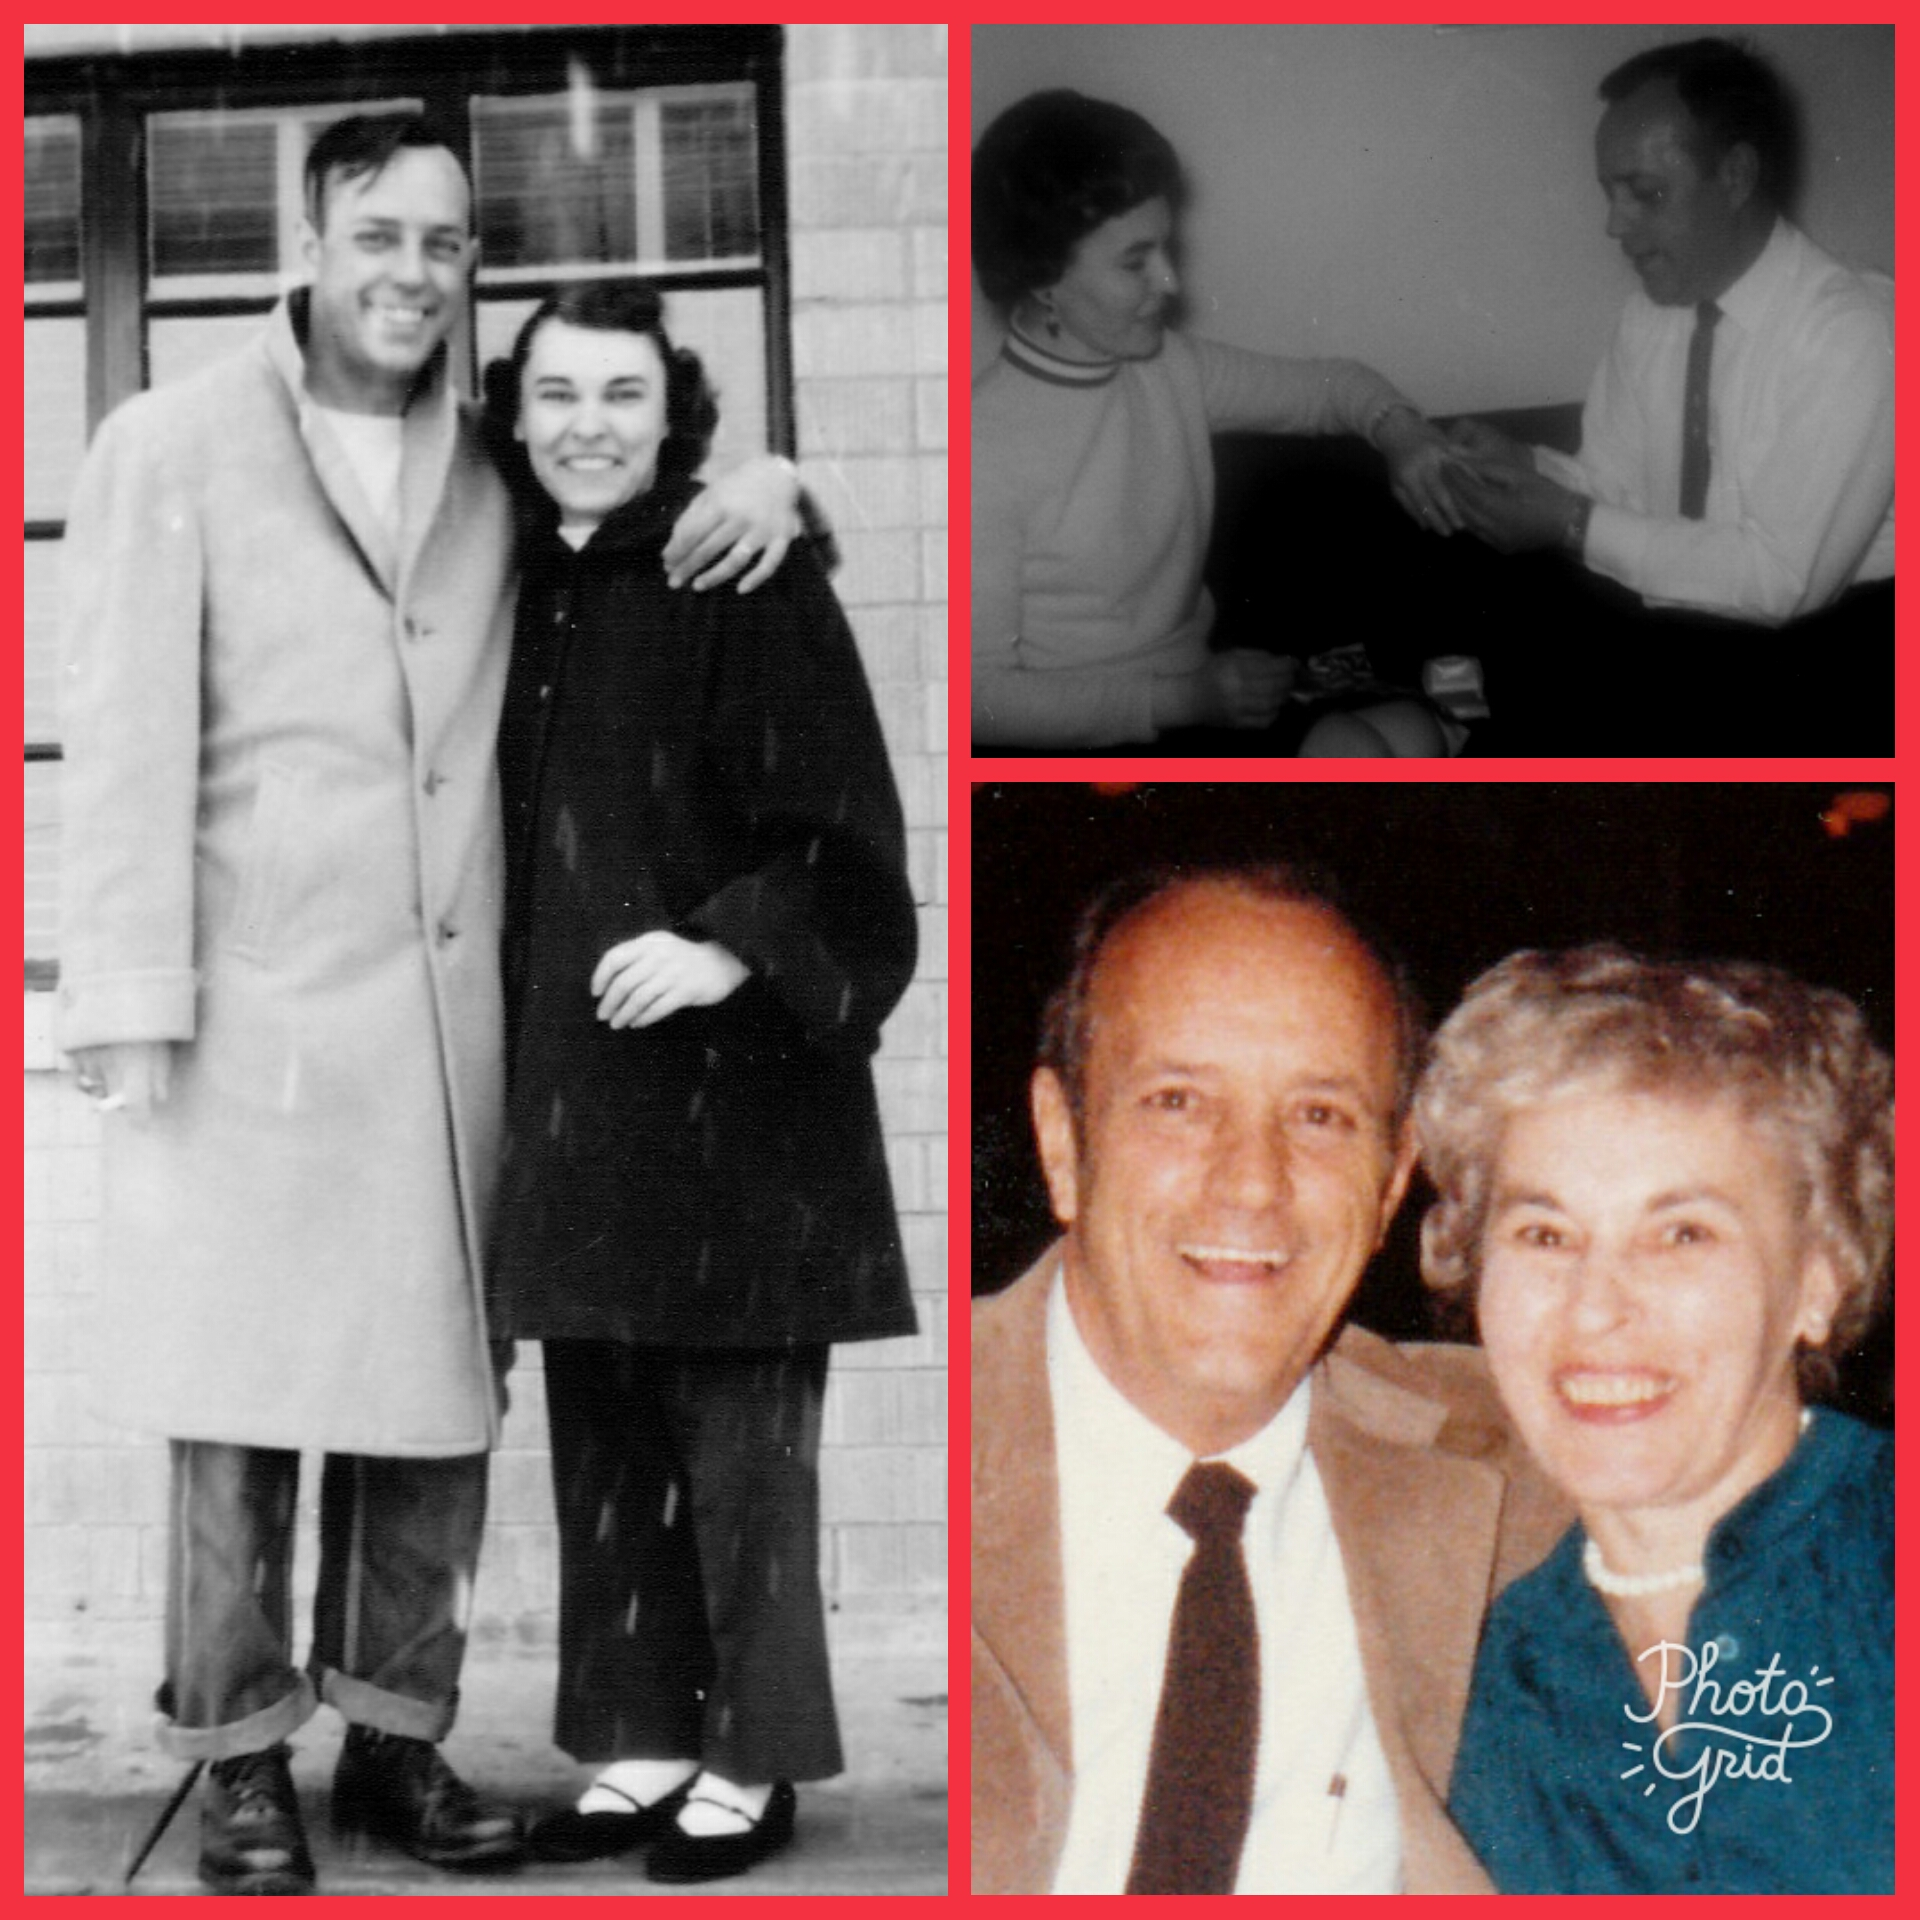 Rex and Helen Wasson, my Dad and Mom: their honeymoon, 1952; the diamond engagement ring my Mom had wanted for so long, 1966; their three brief years of retirement before my Dad passed away.